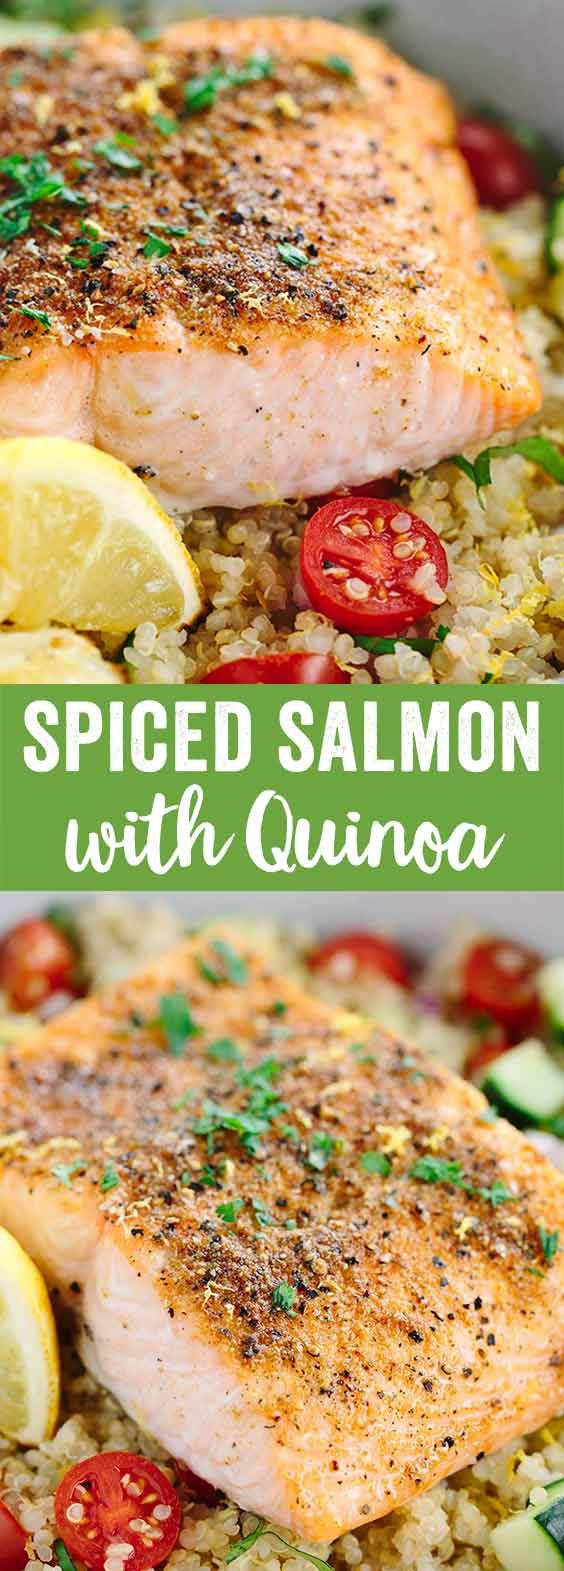 Photo of Mediterranean Spiced Salmon and Vegetable Quinoa | Jessica Gavin